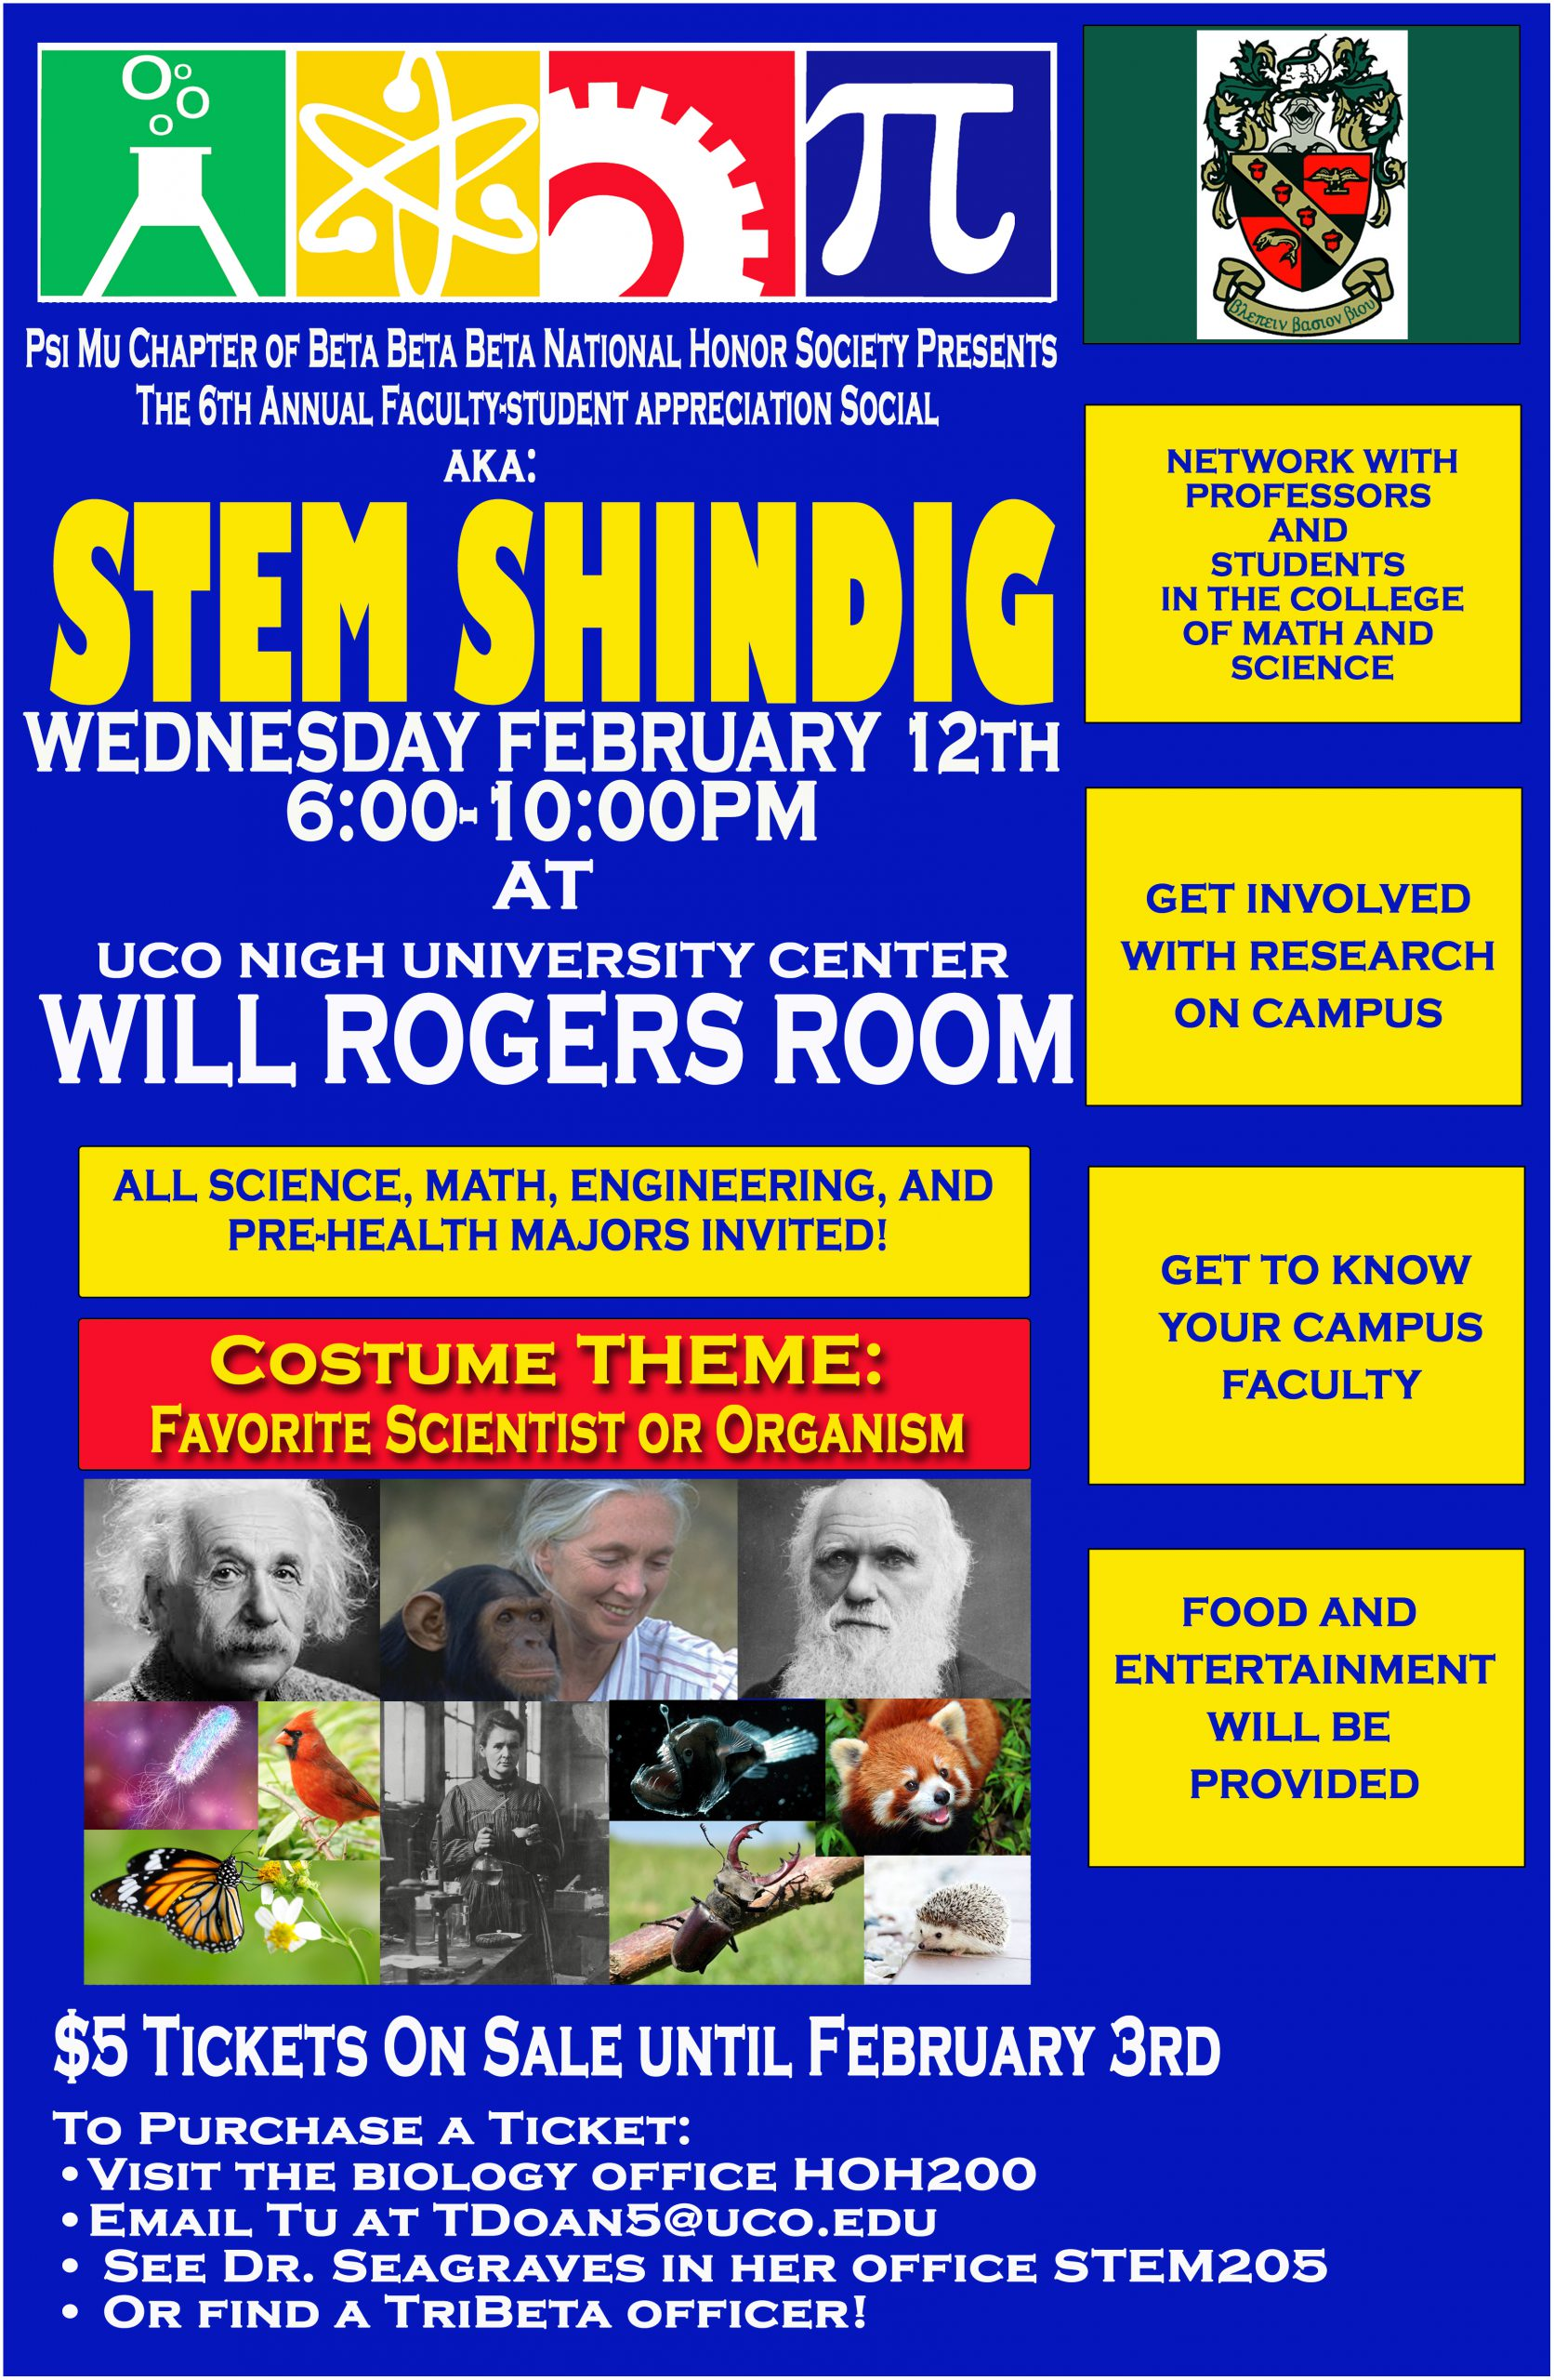 STEM Shindig taking place Wednesday Feb 12th 6 to 10 PM